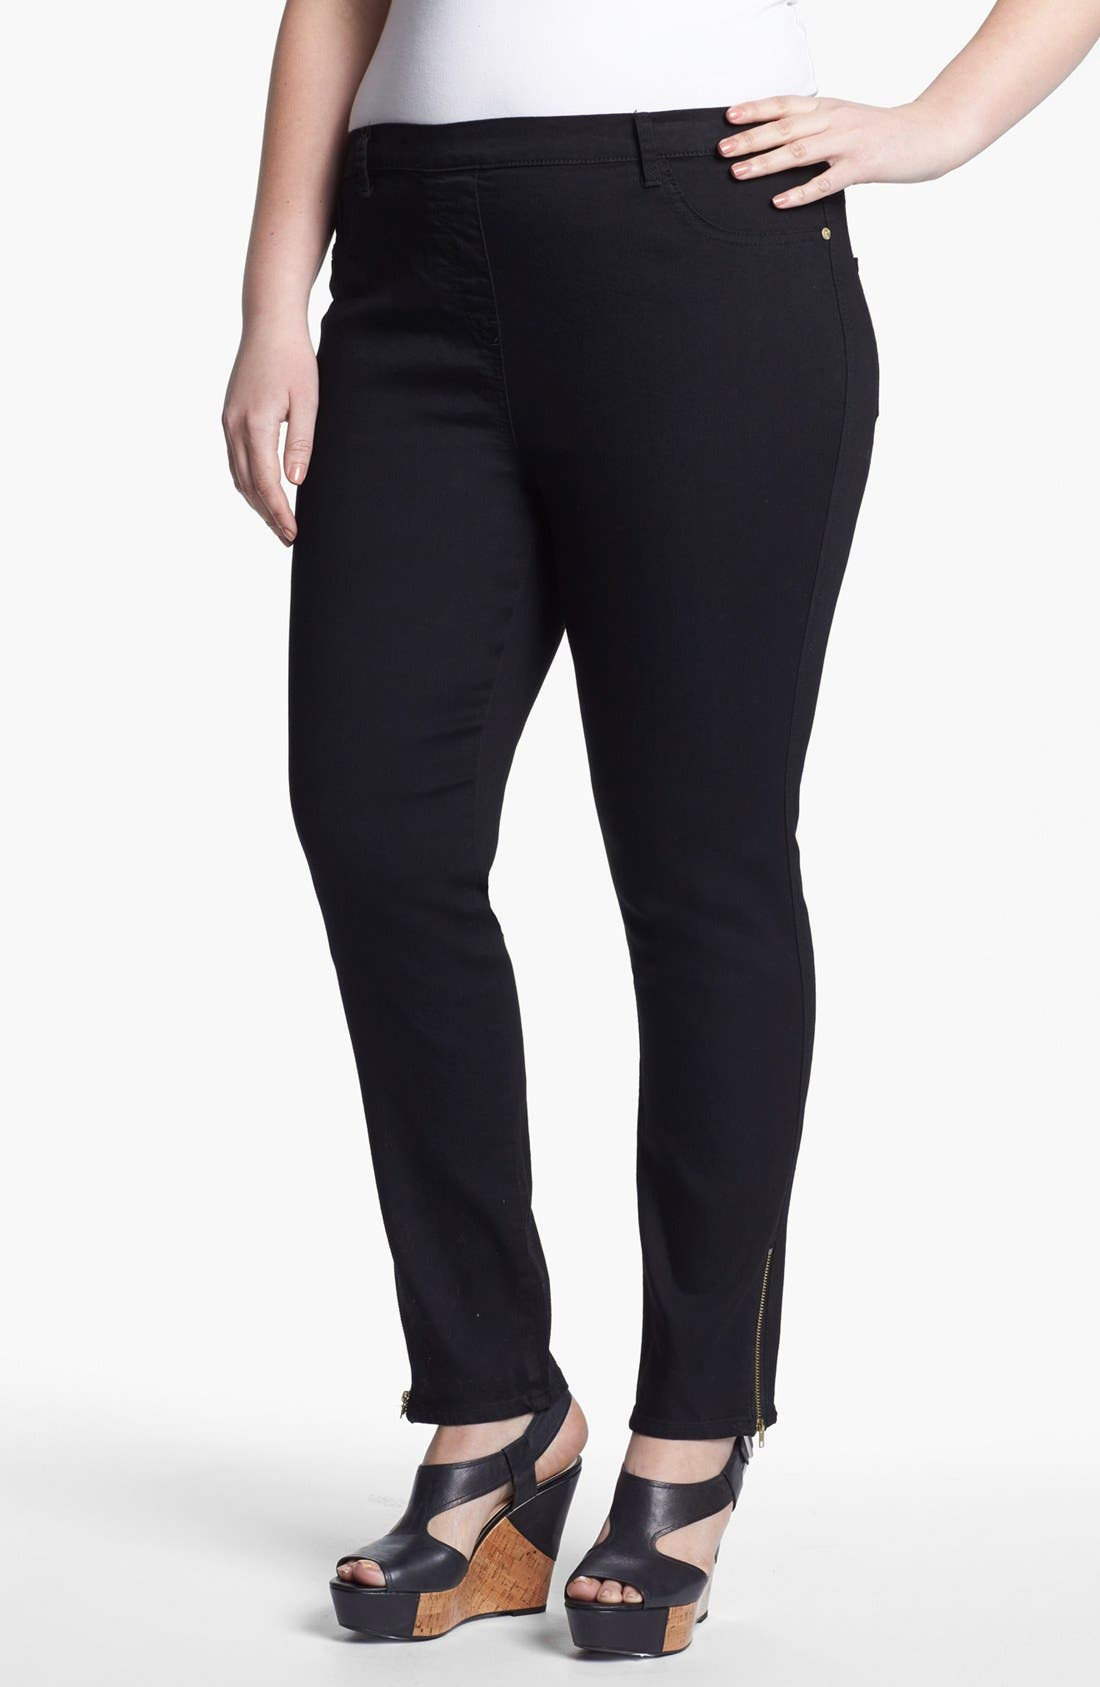 Alternate Image 1 Selected - Evans Ankle Zip Denim Leggings (Plus Size)